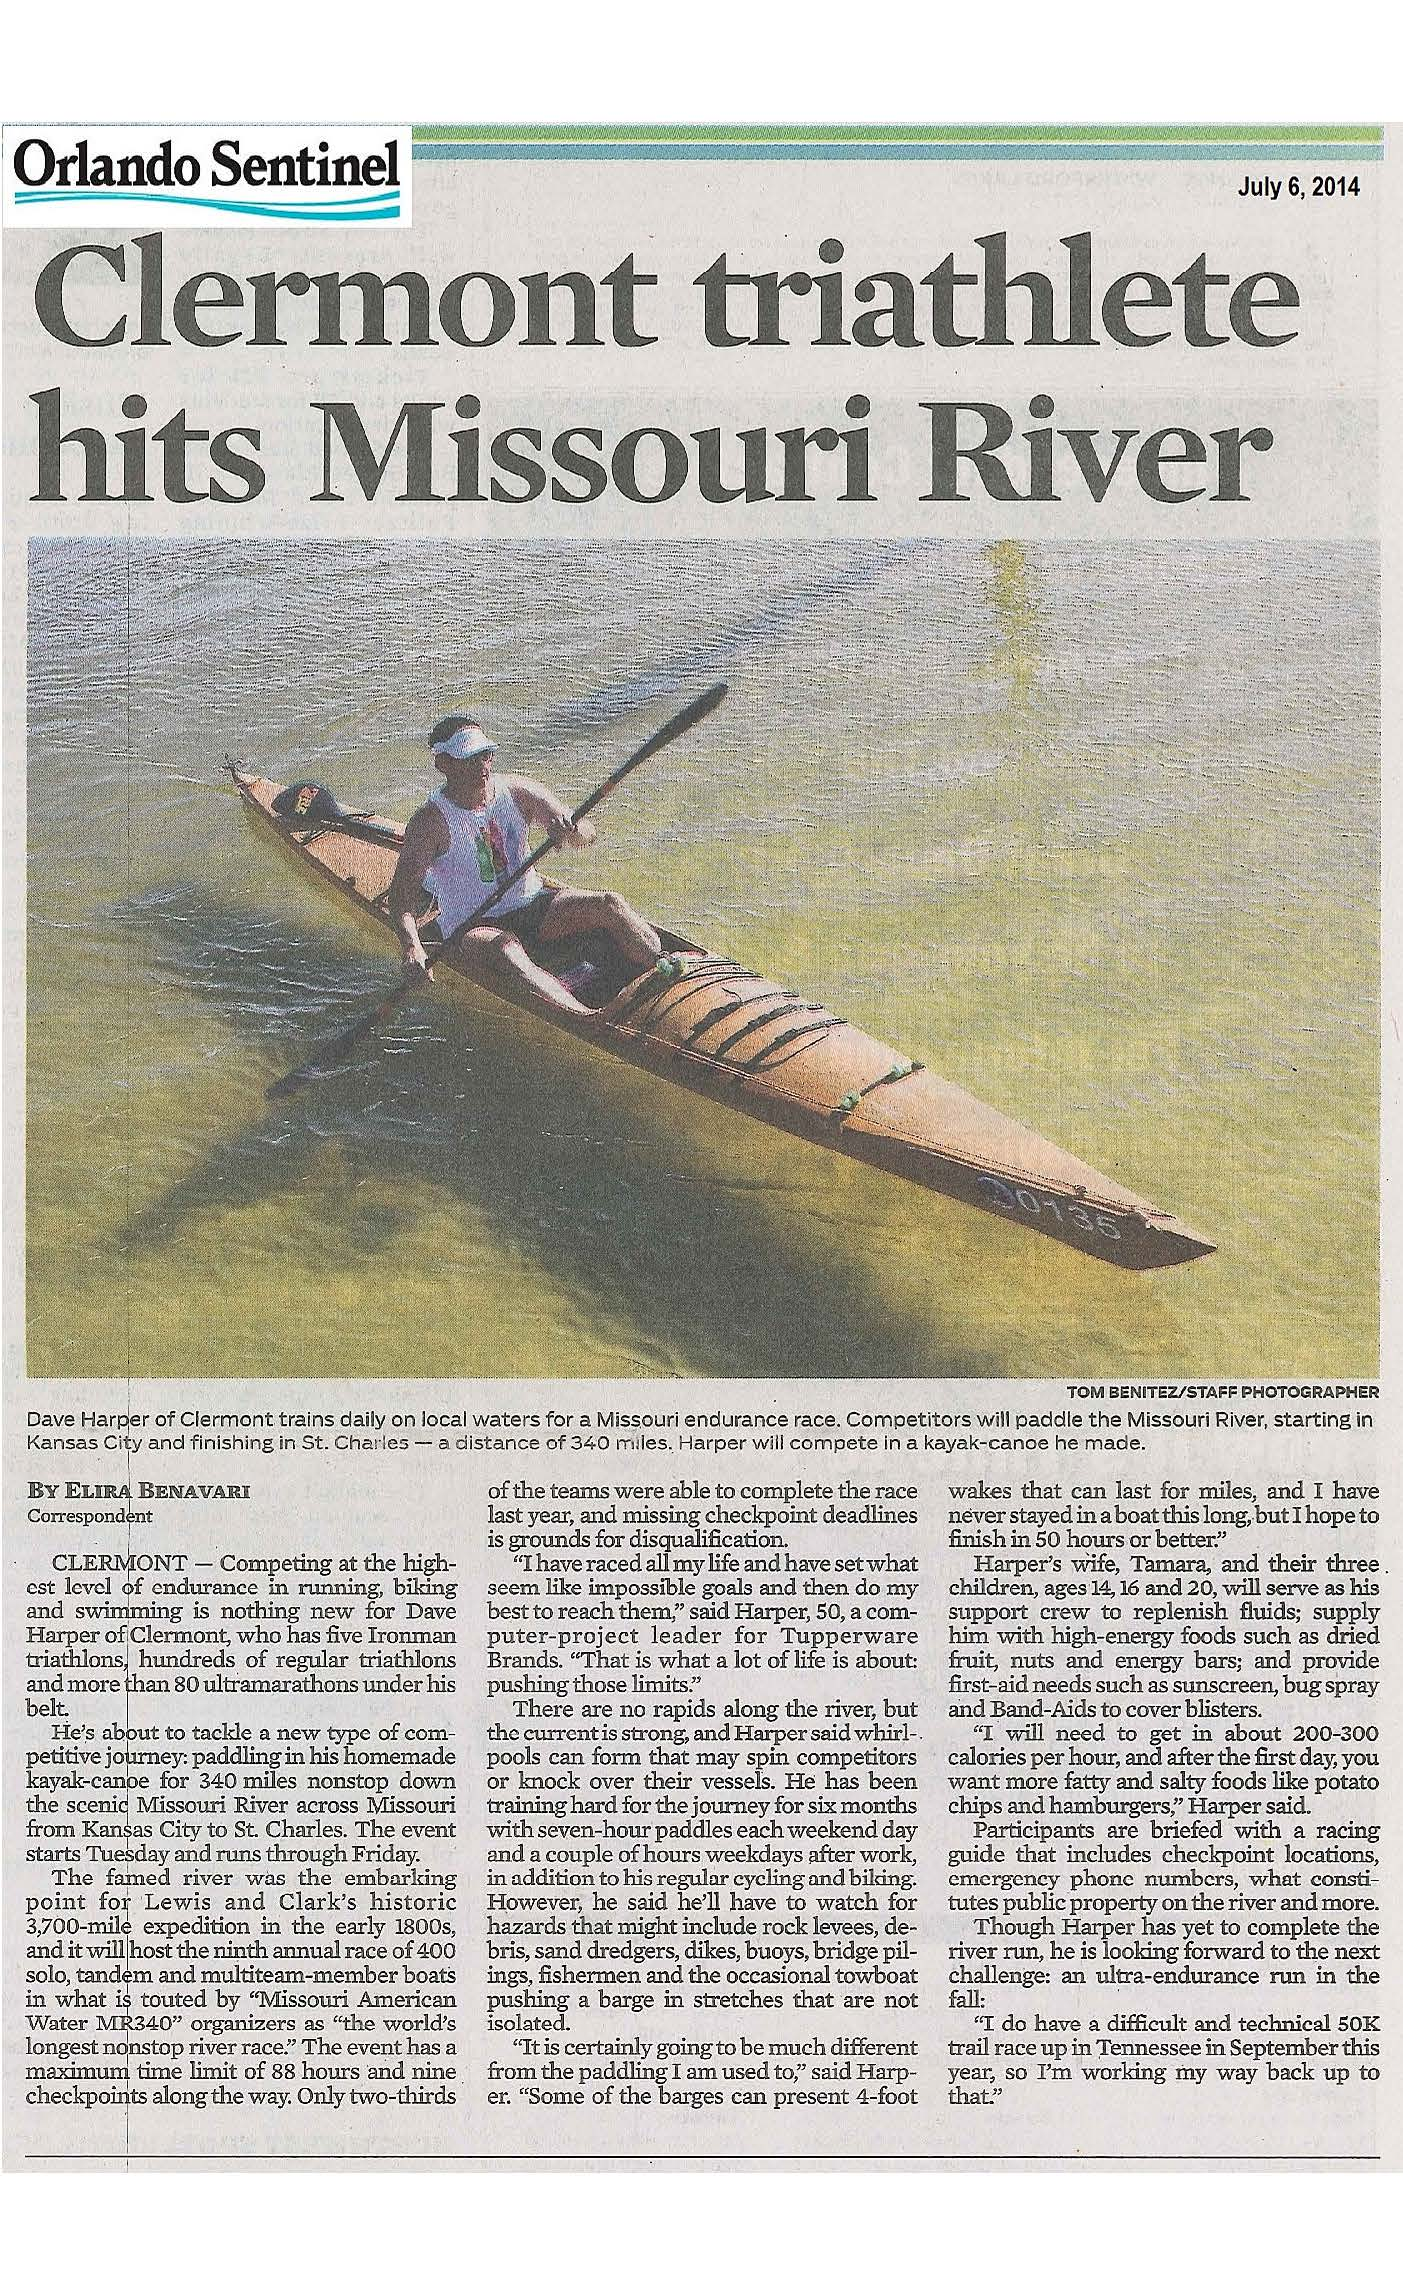 Missouri River 340 July 6 Newspaper Article